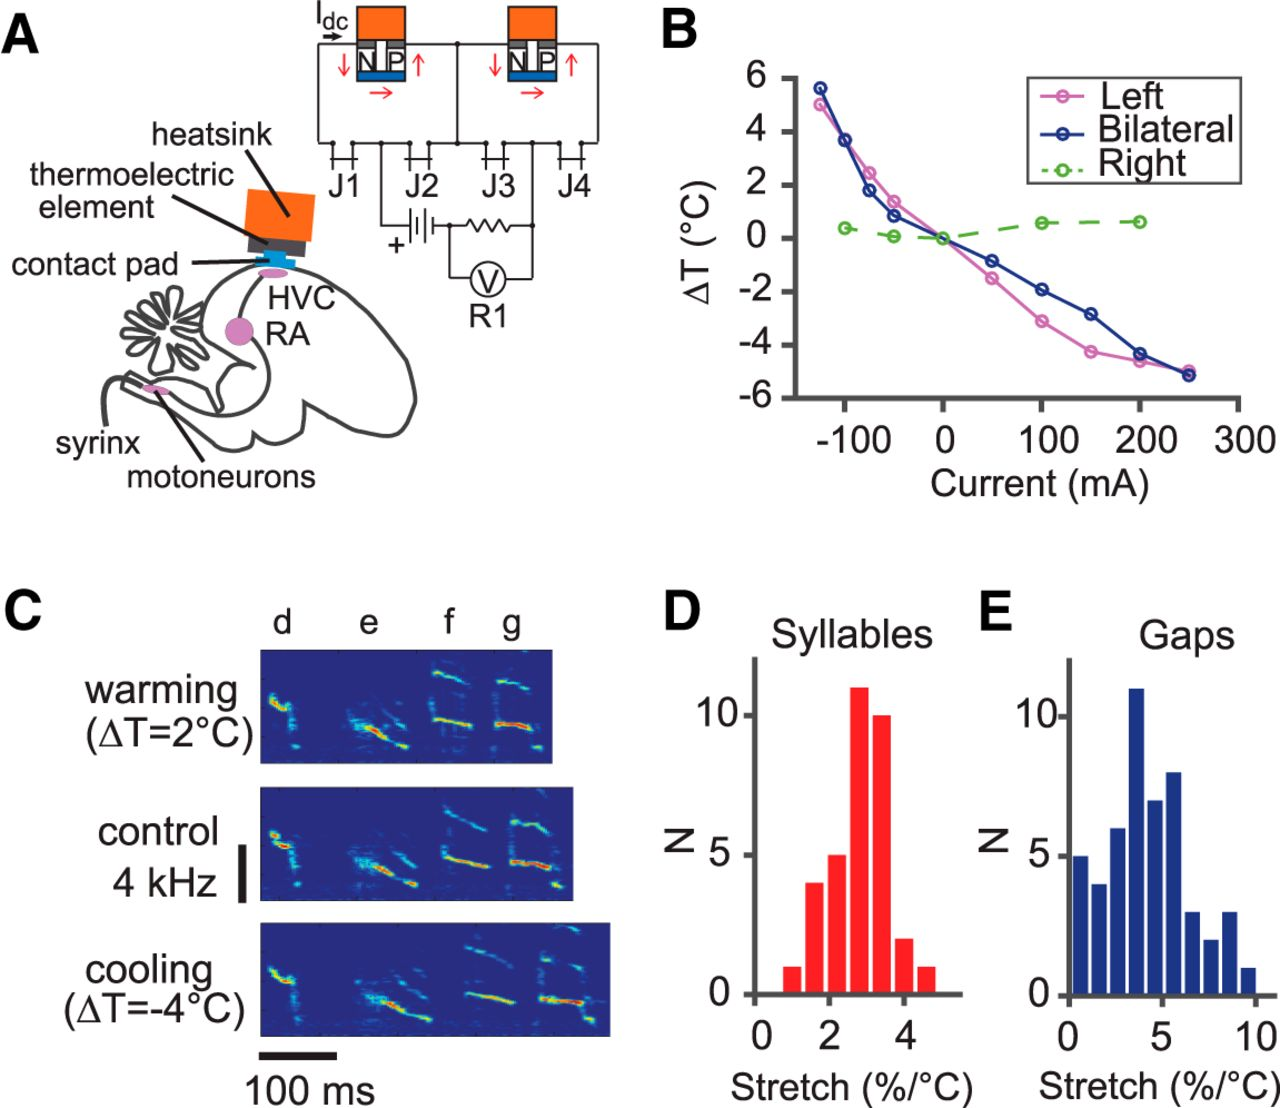 Temperature Manipulation In Songbird Brain Implicates The Premotor Electrical Circuit Showing Current Flow By Pmb 300 Ad Diagram Download Figure